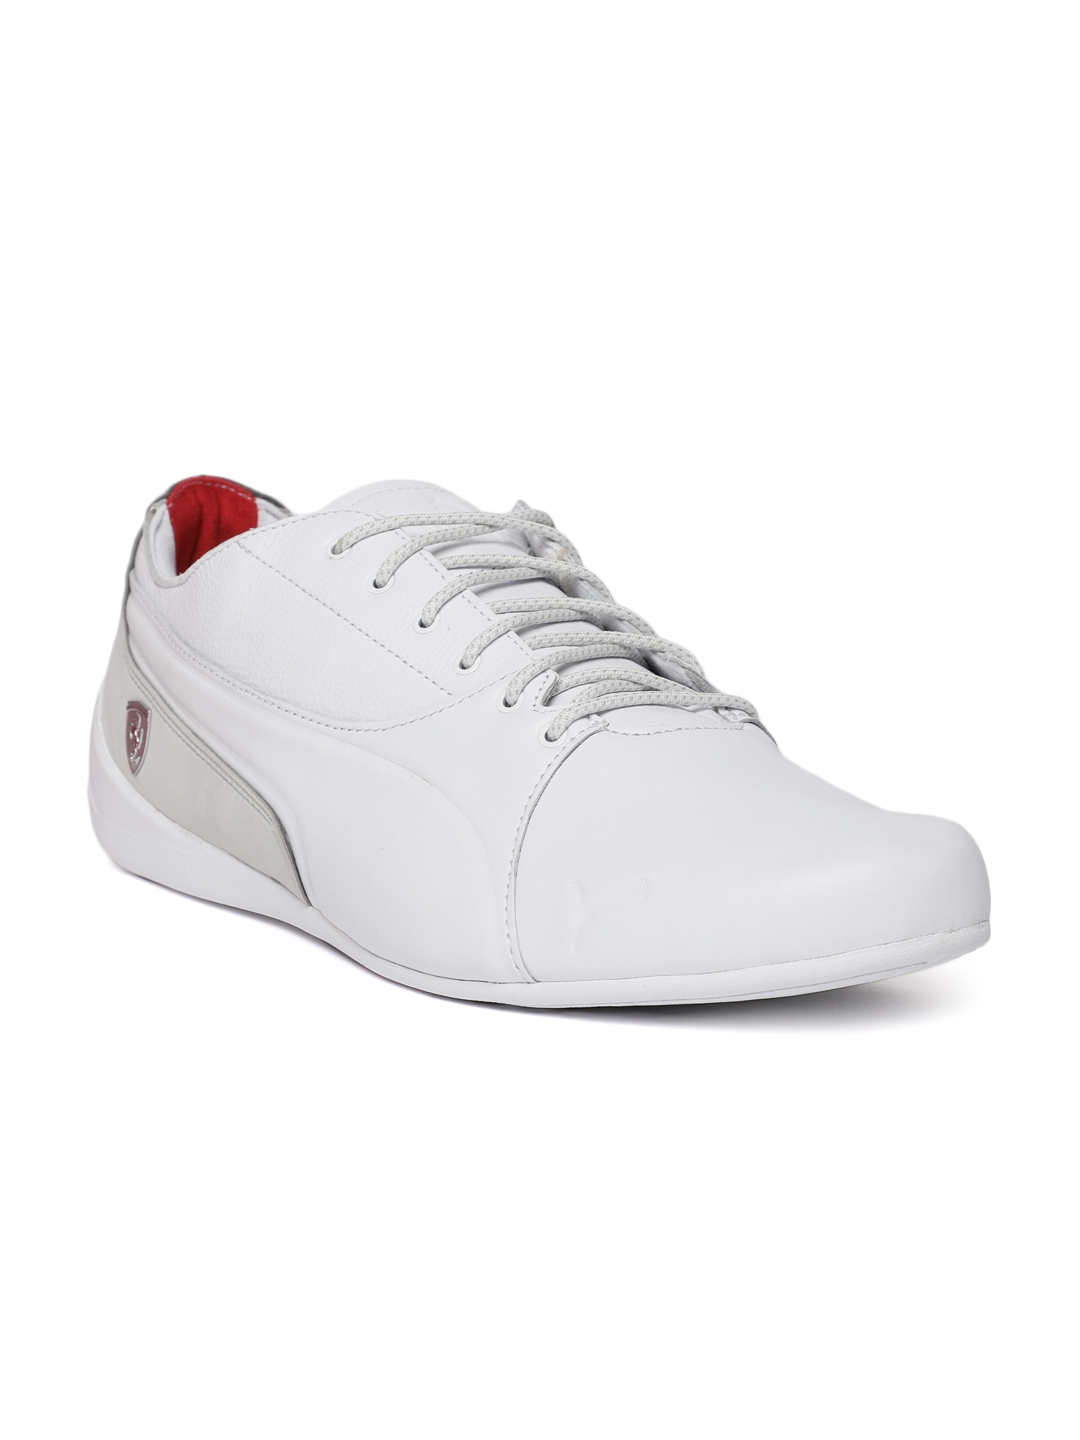 79a64fe65b Buy Puma Men White SF Drift Cat 7 LS Leather Sneakers - Casual Shoes ...